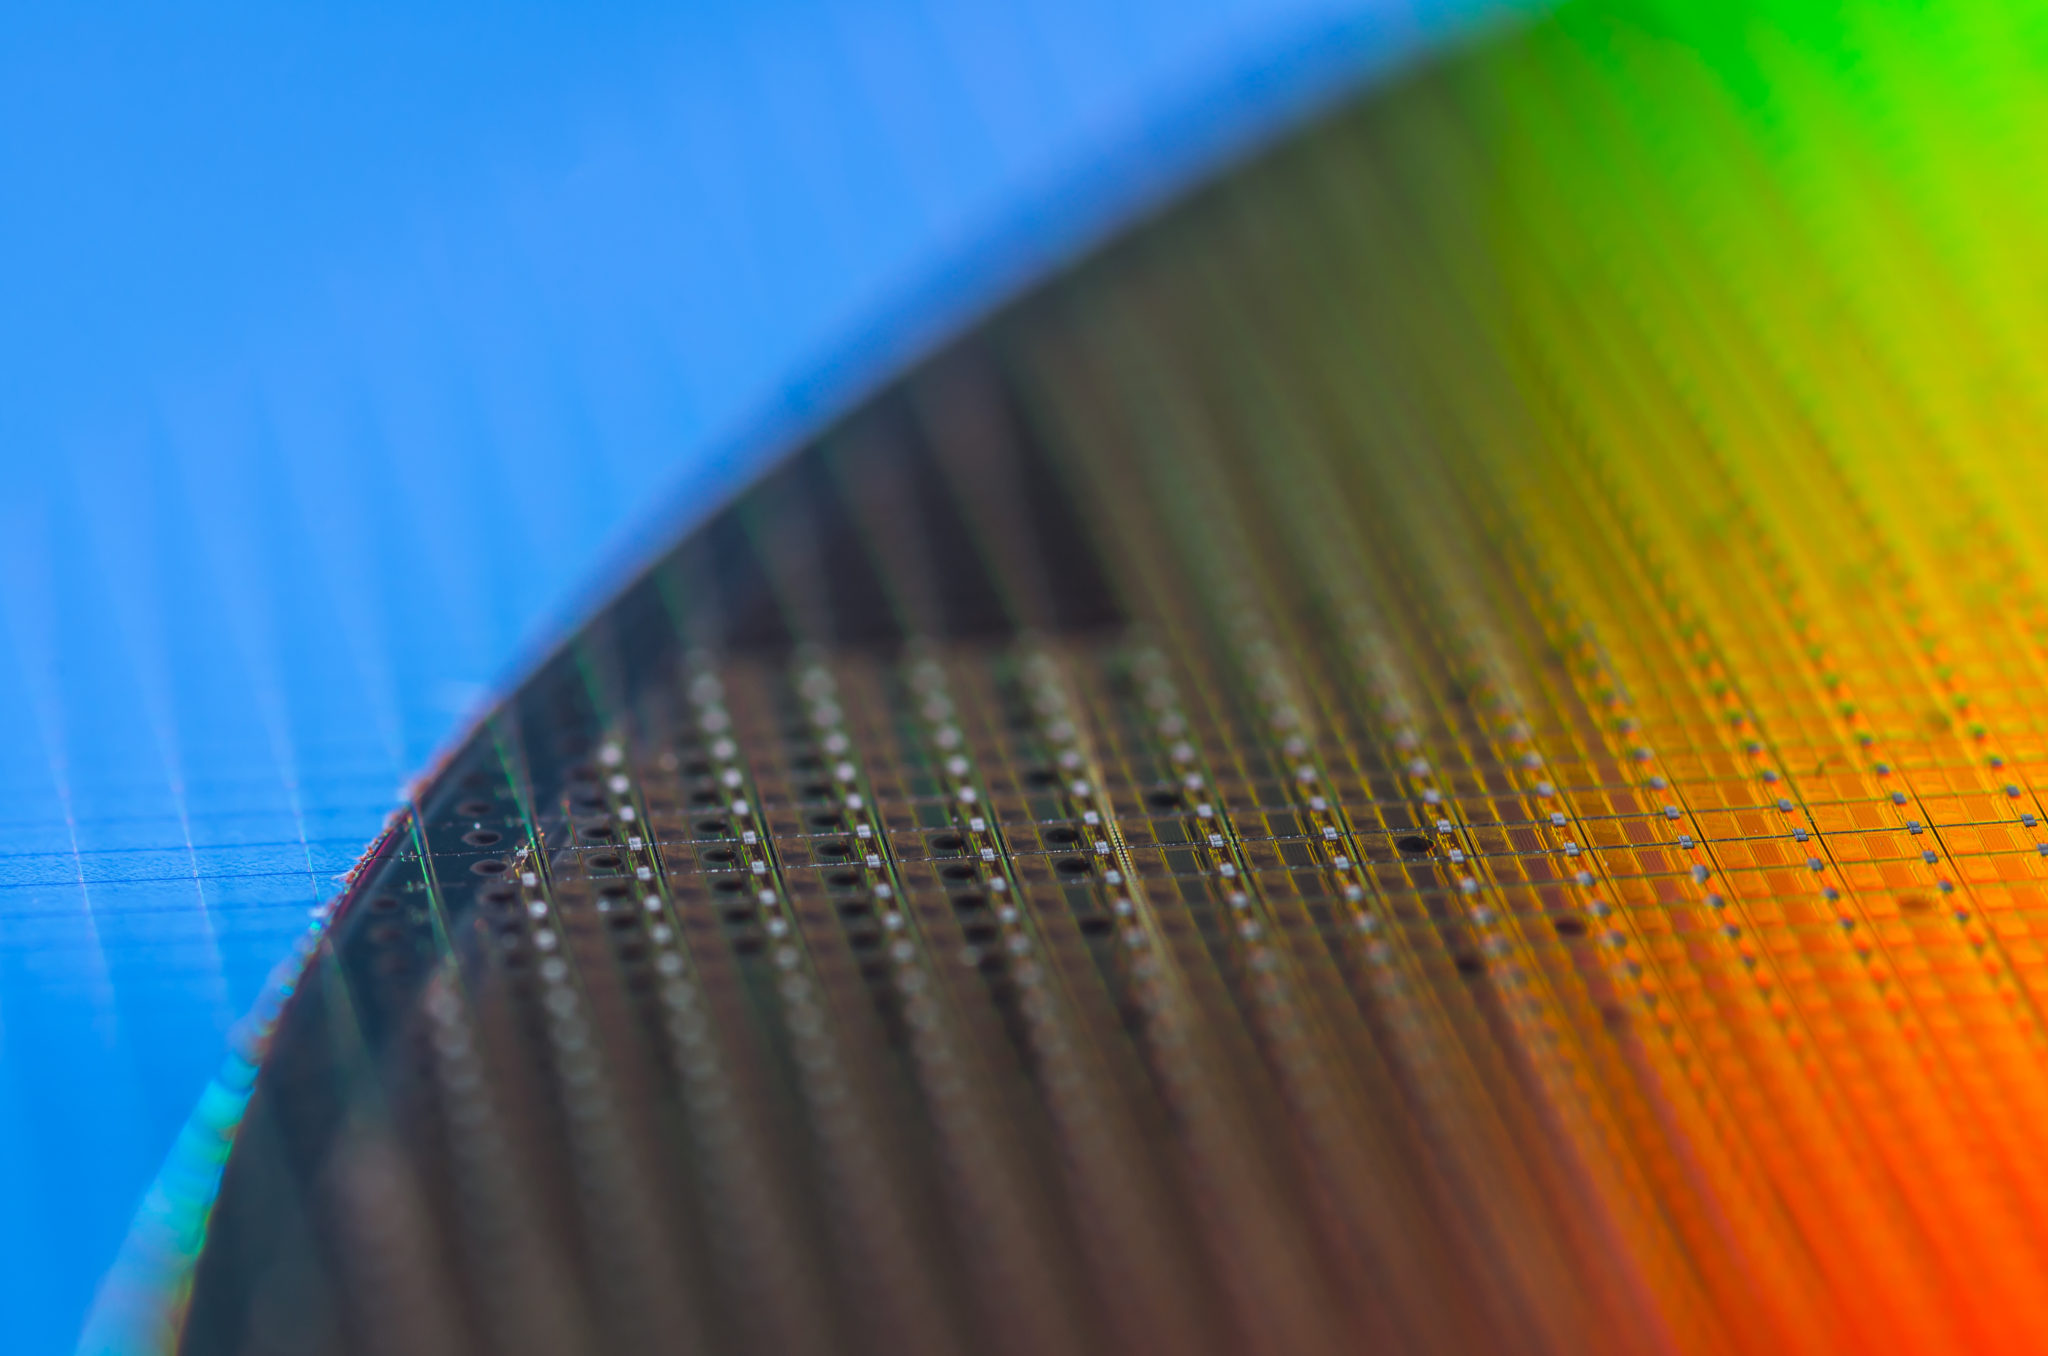 Closeup photo of ferroelectric nanogenerator silicone wafer that generates kinetic power.